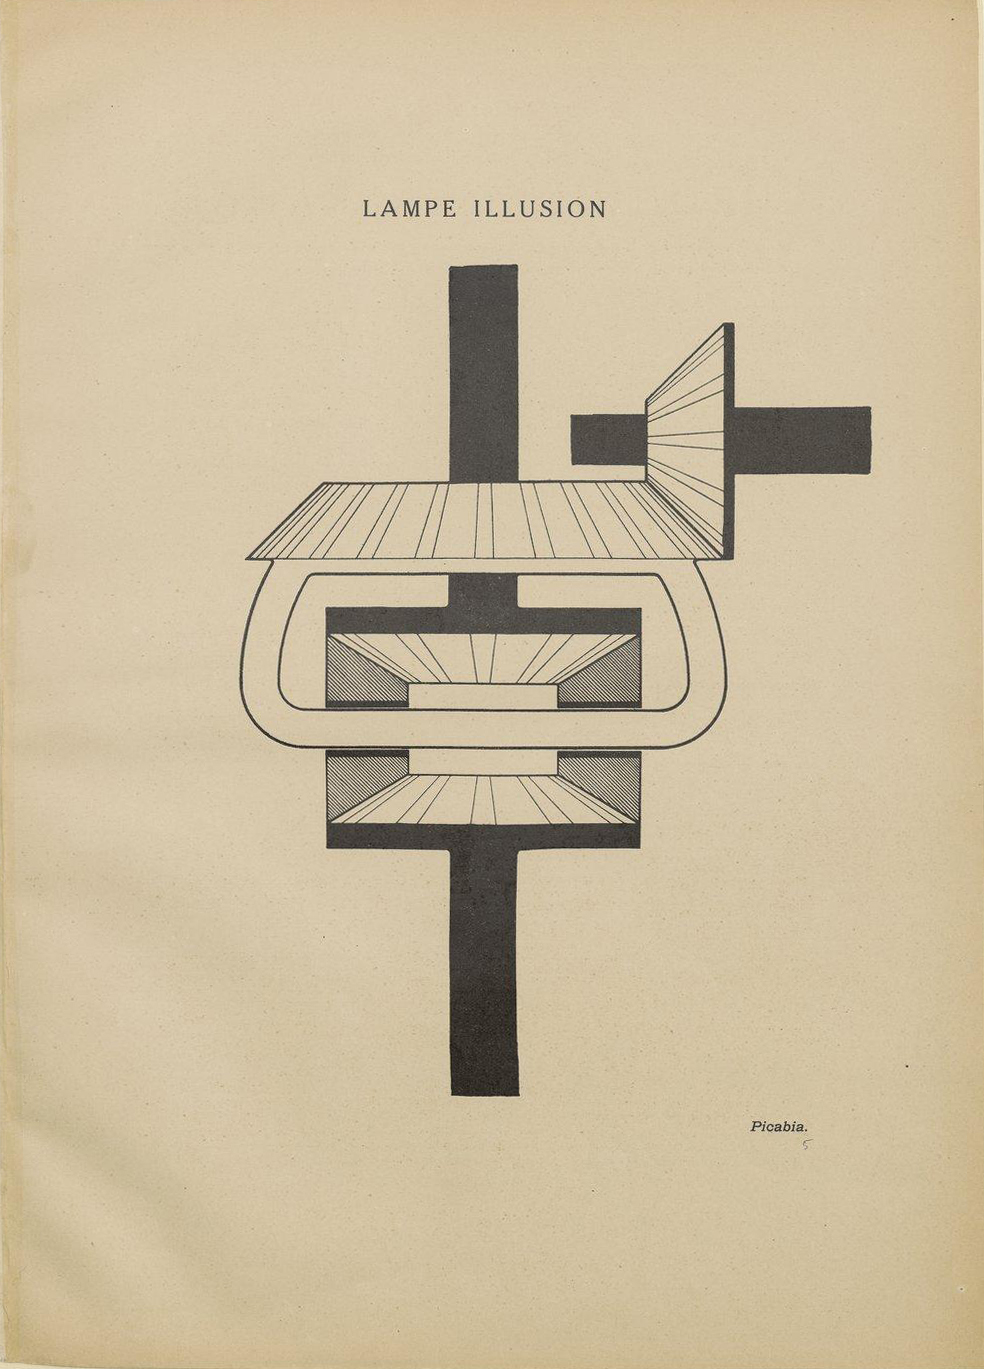 Lampe N File Francis Picabia Lampe Illusion 391 N 3 March 1 1917 Jpg